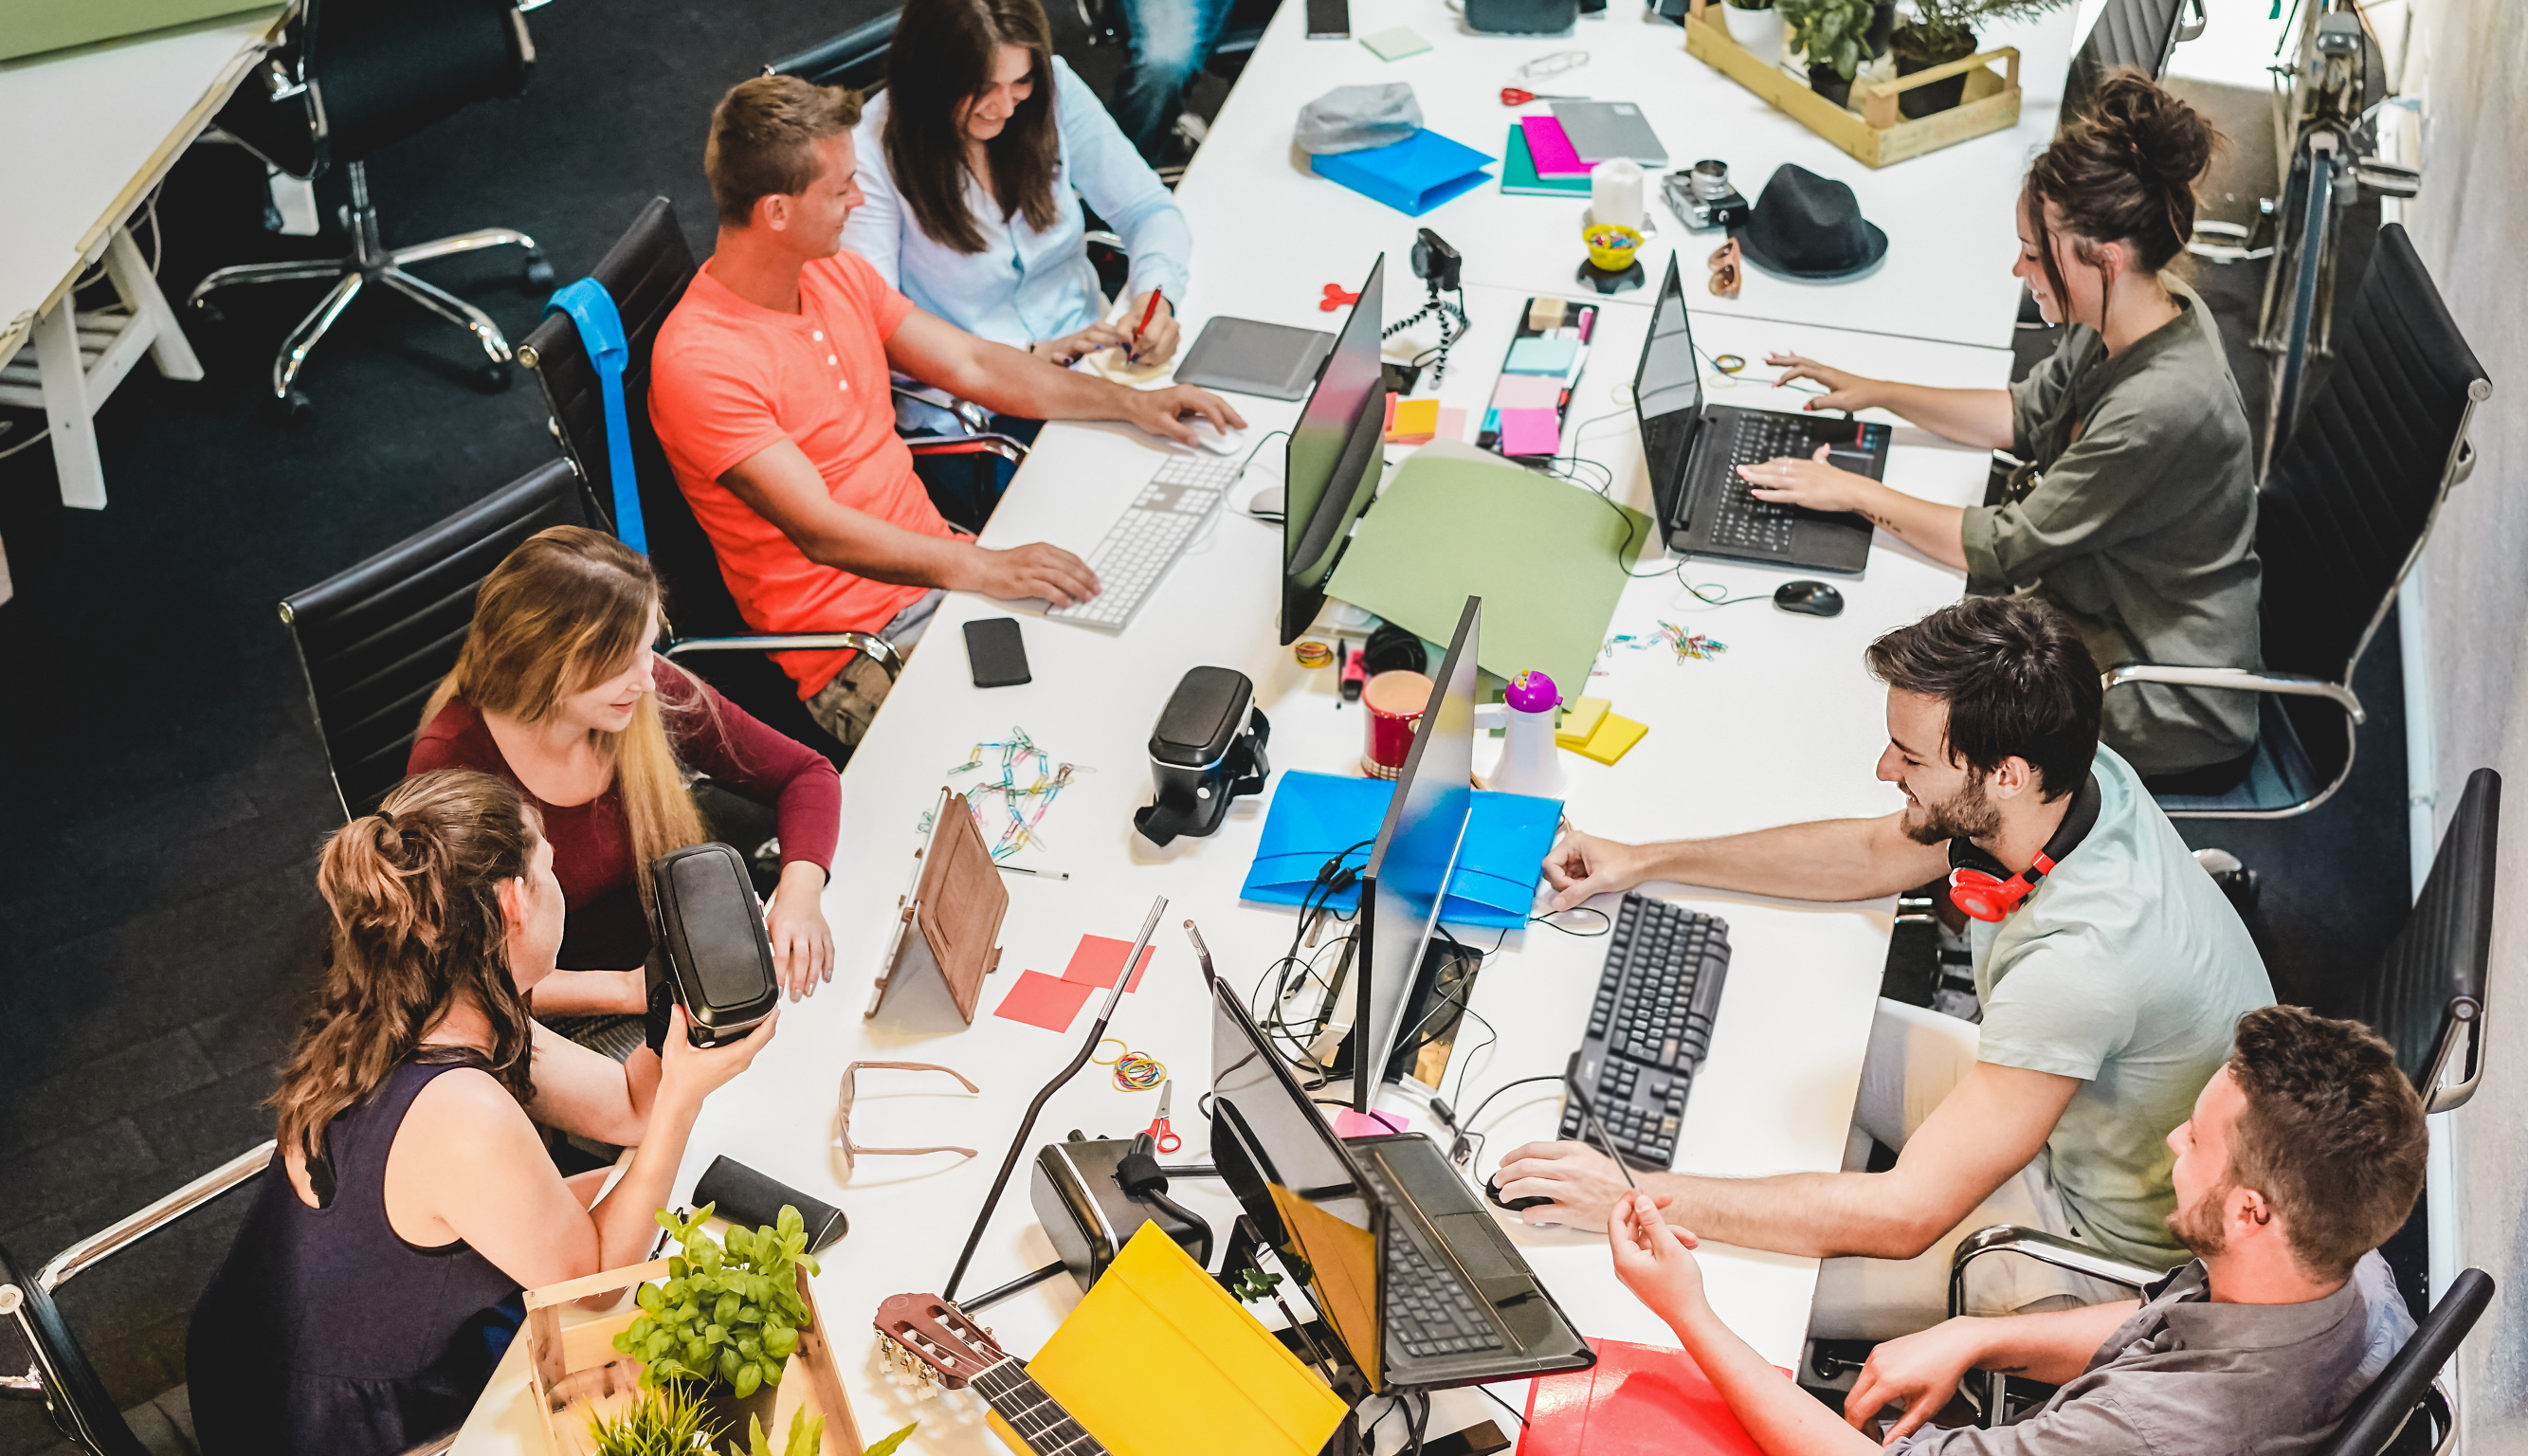 A group of young employees in an open office setting.